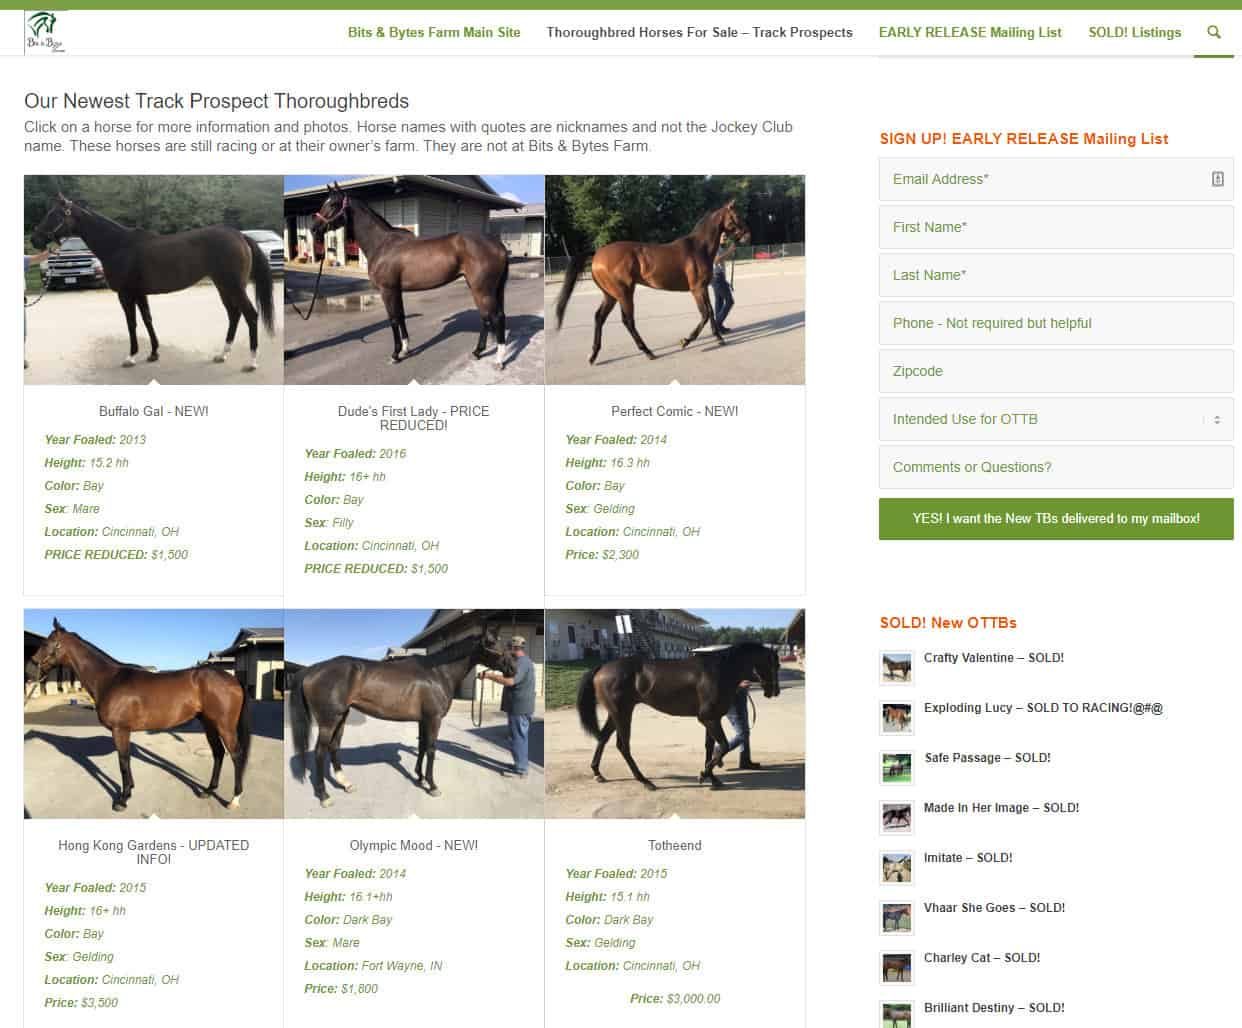 Thoroughbred Horses For Sale - October 1, 2019